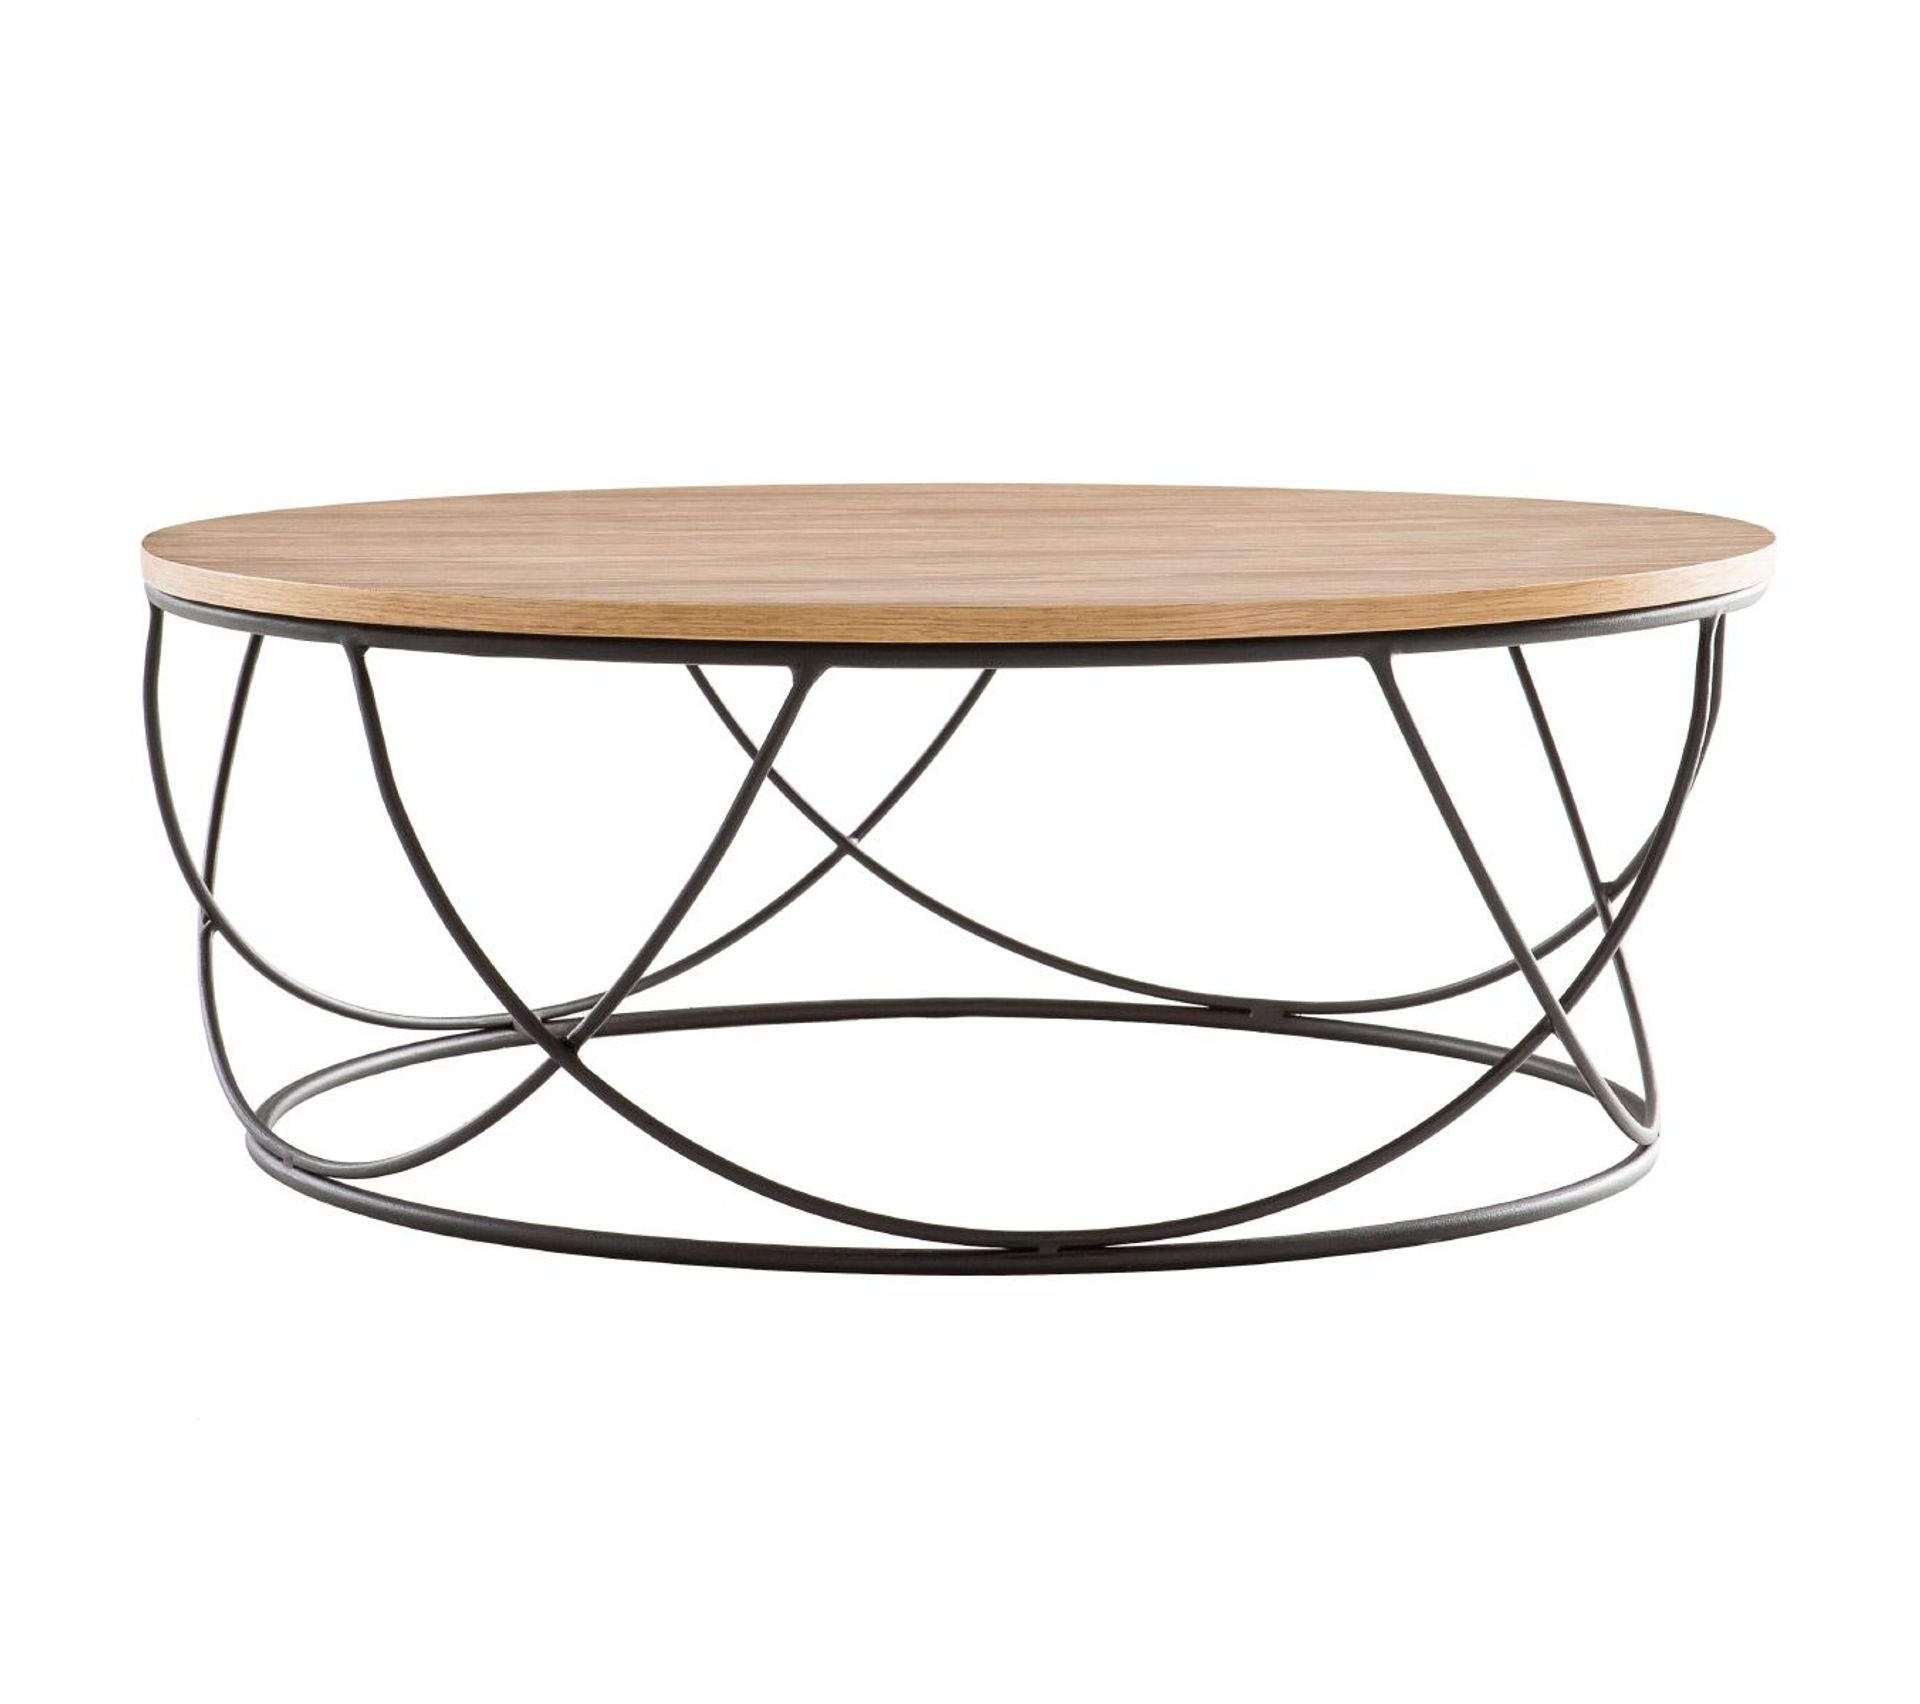 100 Remarquable Concepts Table Basse Ronde Bois